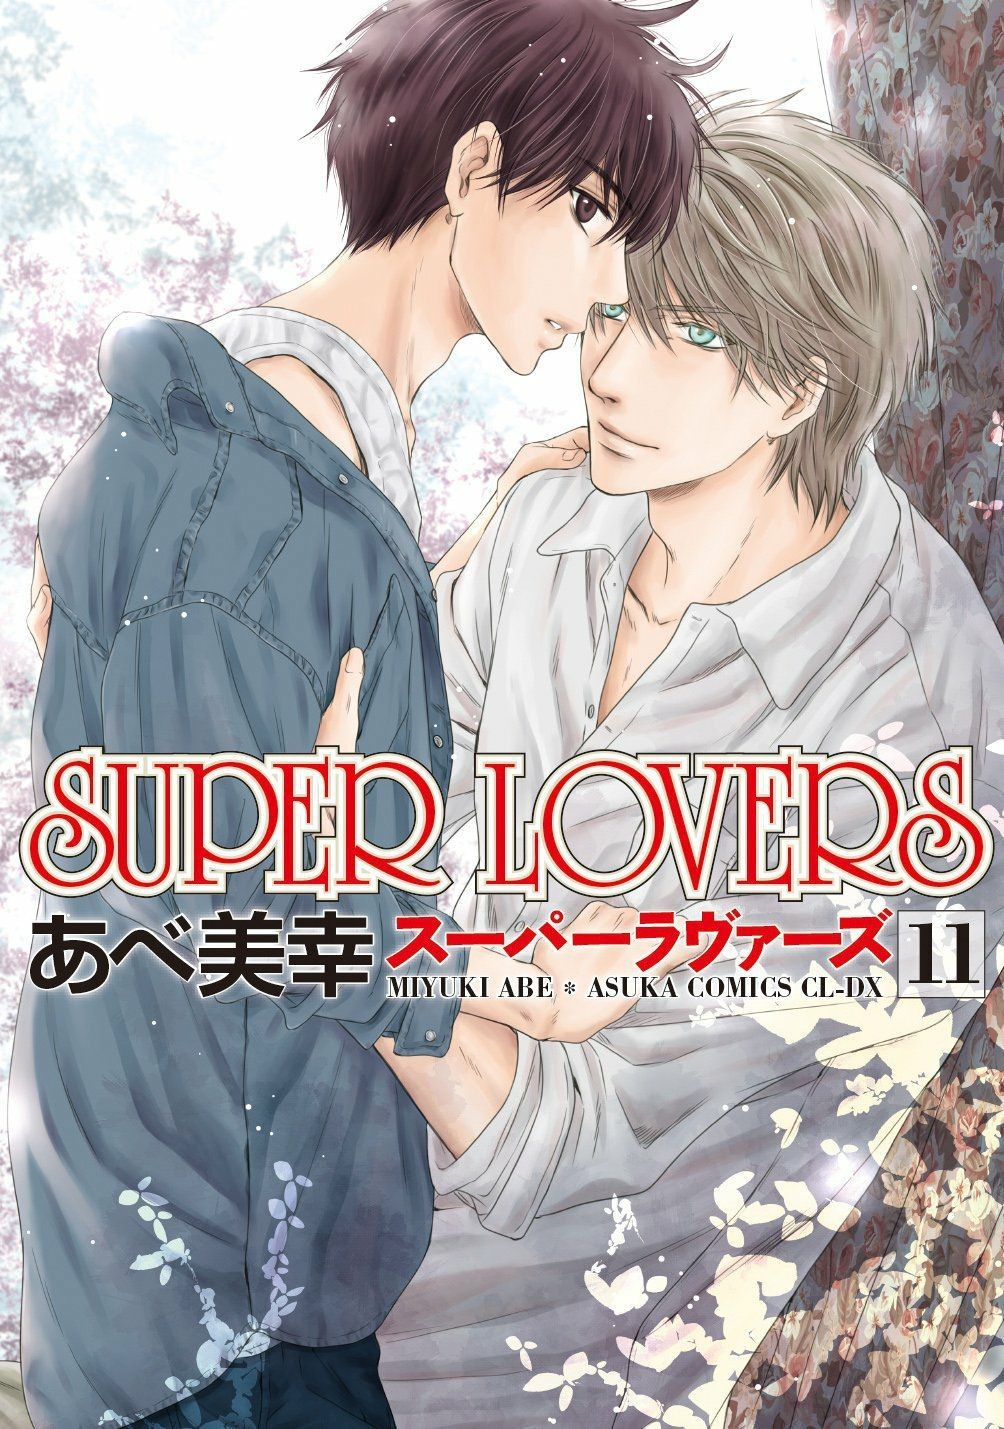 SUPER LOVERS (11)